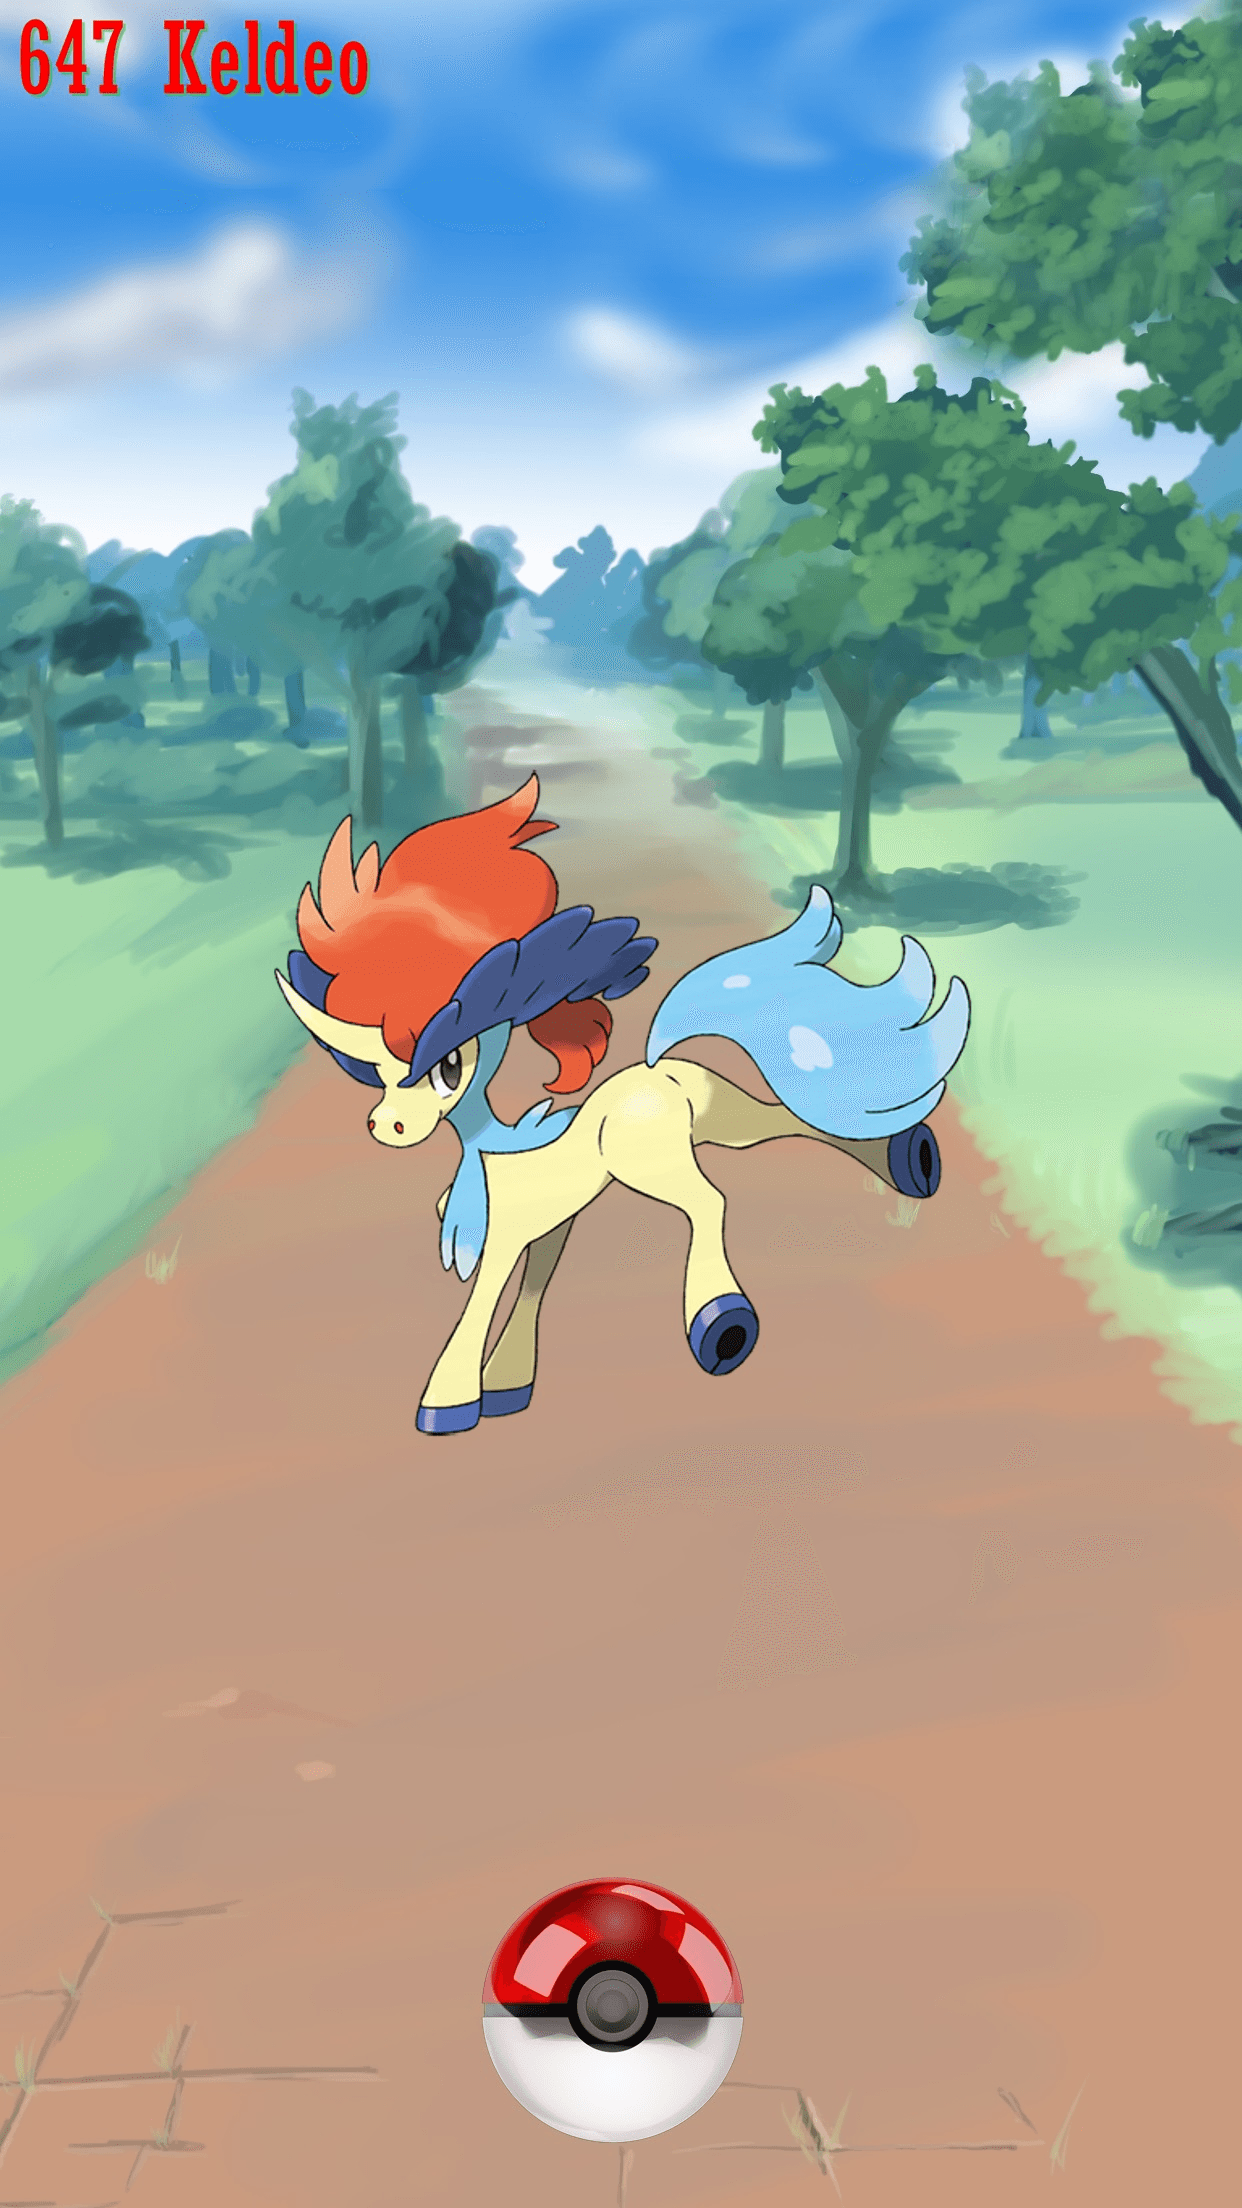 647 Street Pokeball Keldeo | Wallpaper